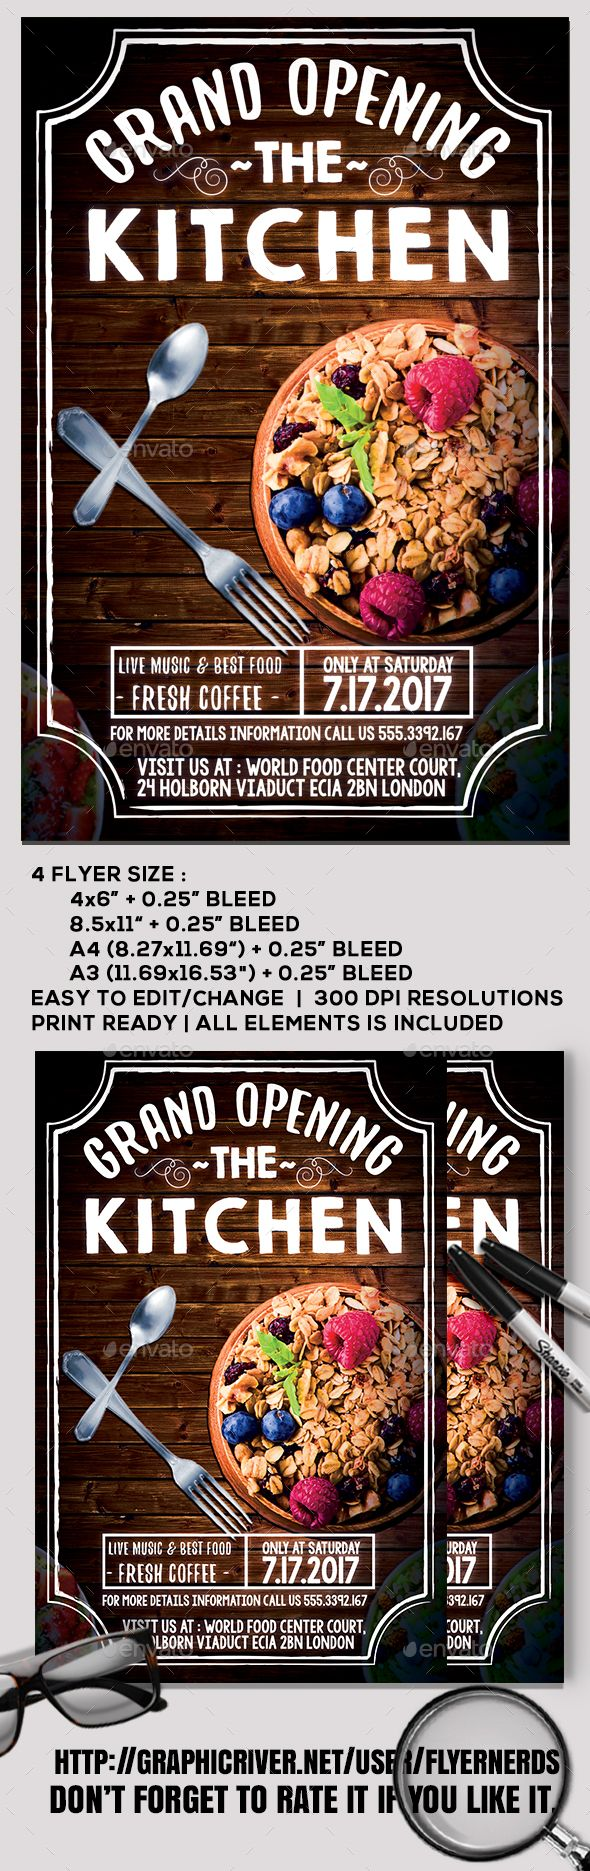 Restaurant Grand Opening Flyer  Grand Opening Fonts And Behance